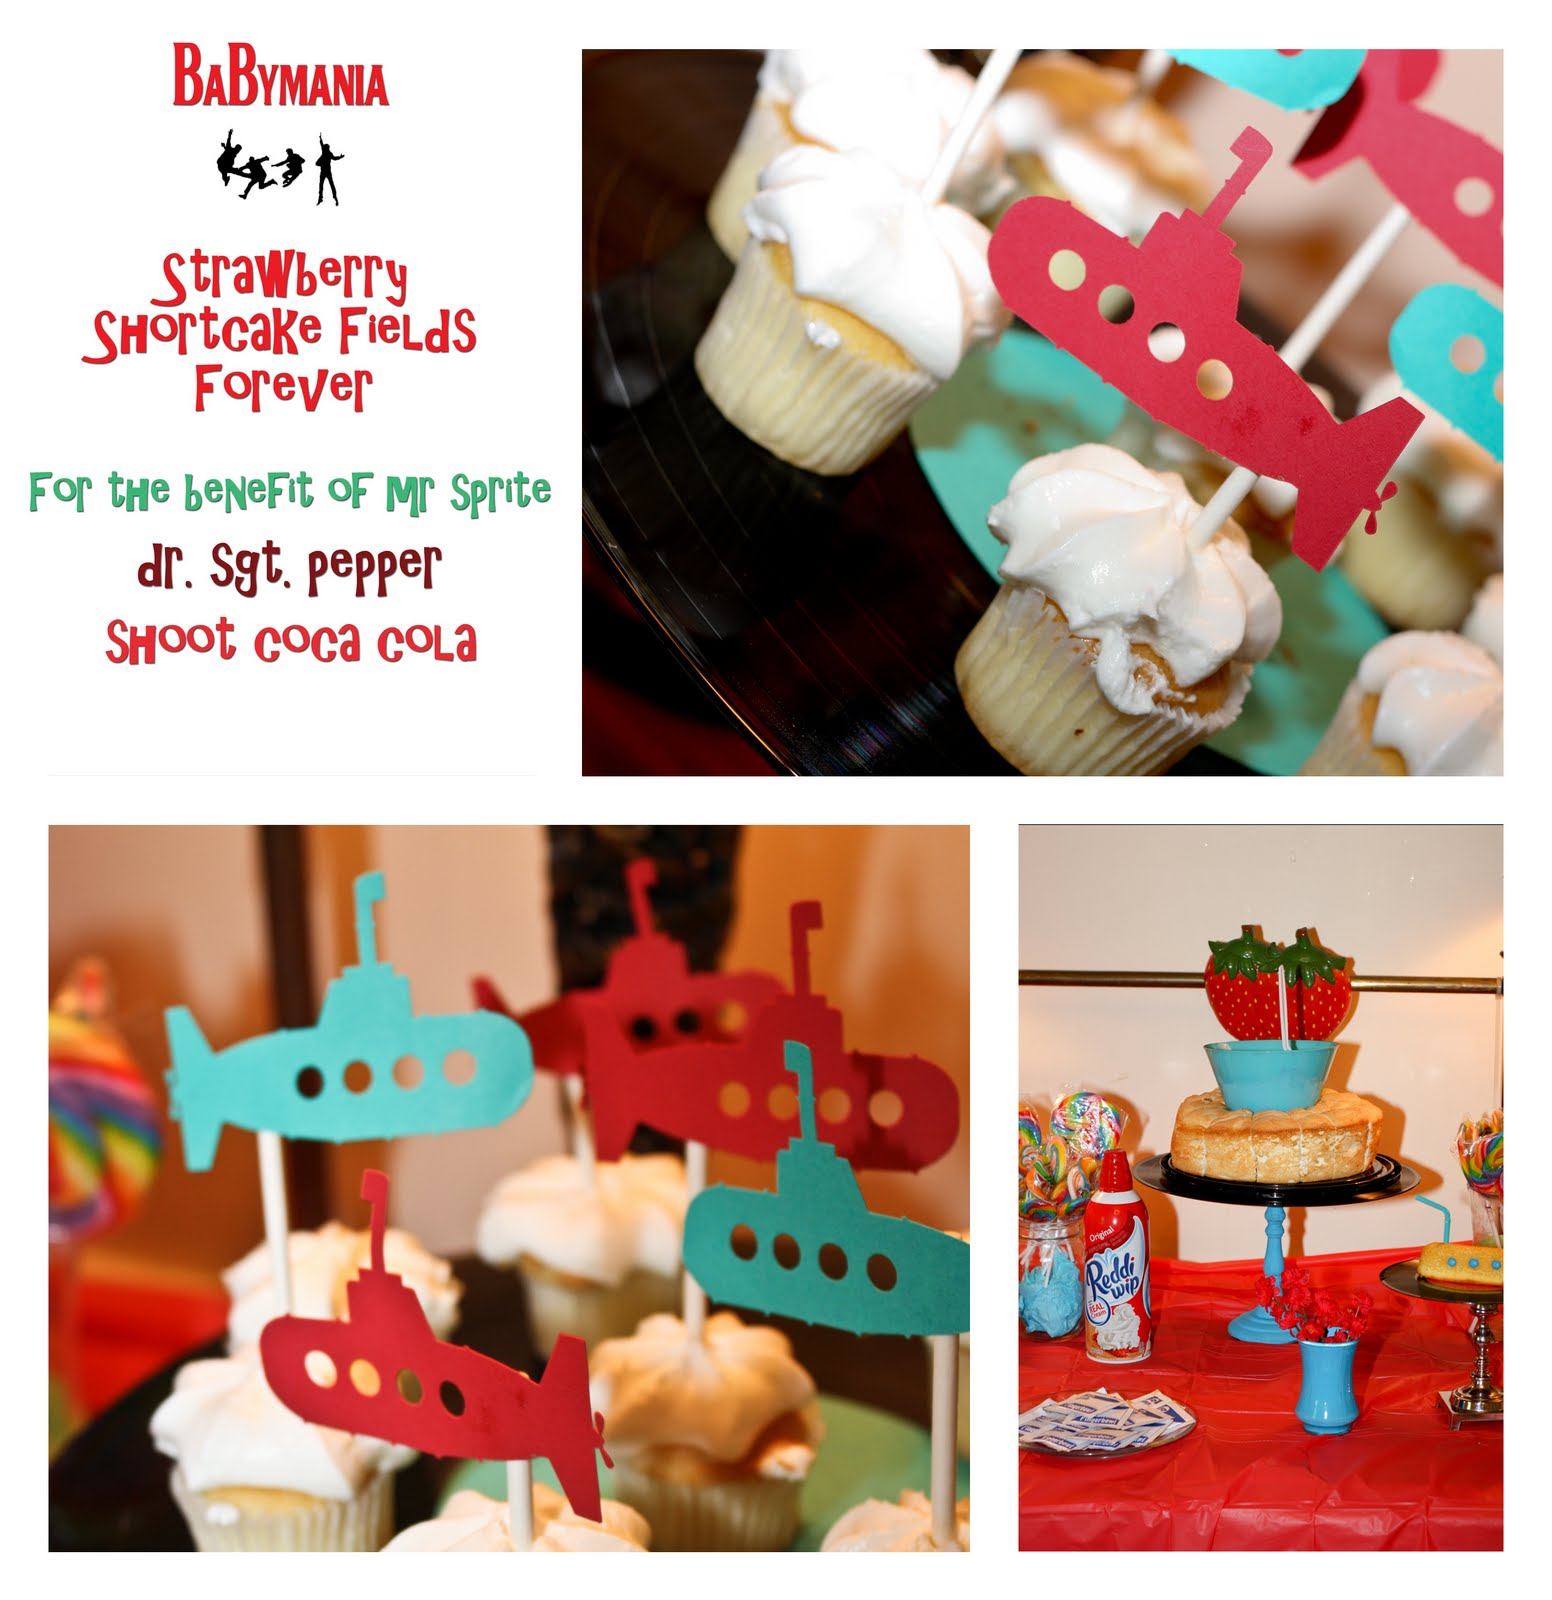 Beau Monde Blog: {BaByMania} Beatles Themed Baby Shower